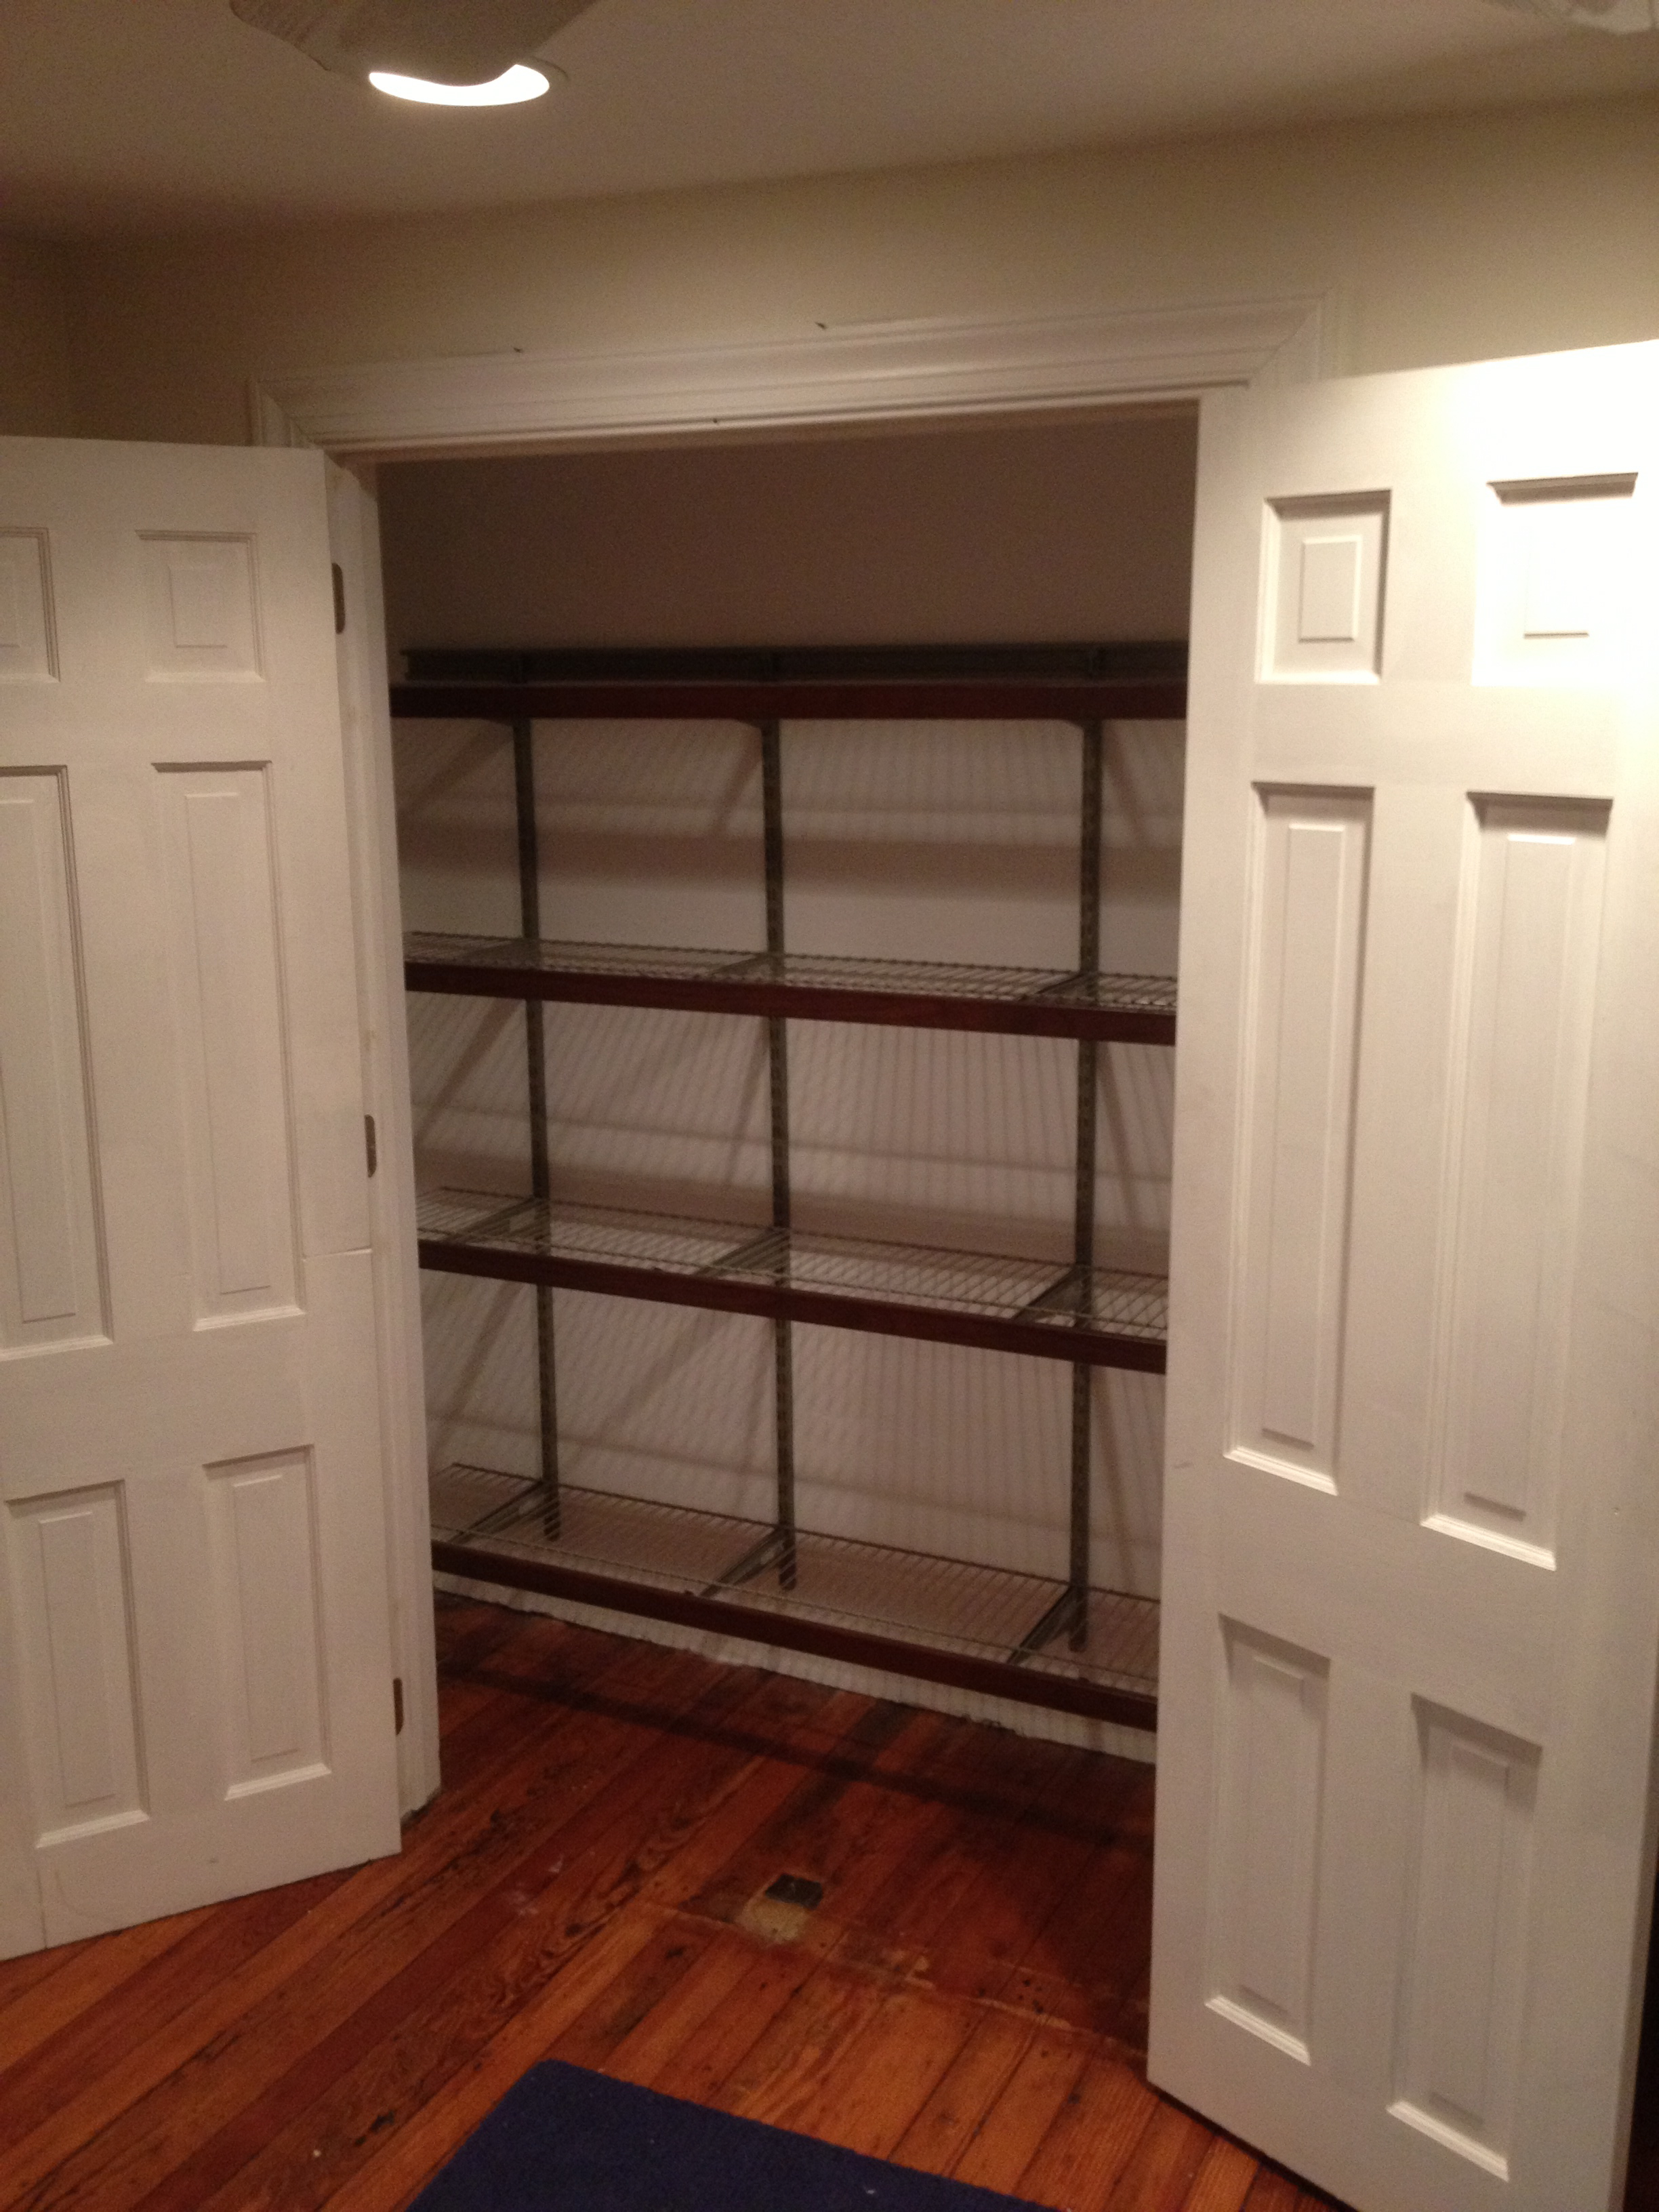 Before The Shelving Unit Was Installed I Cut Two Sets On Hinges Into Jamb Of